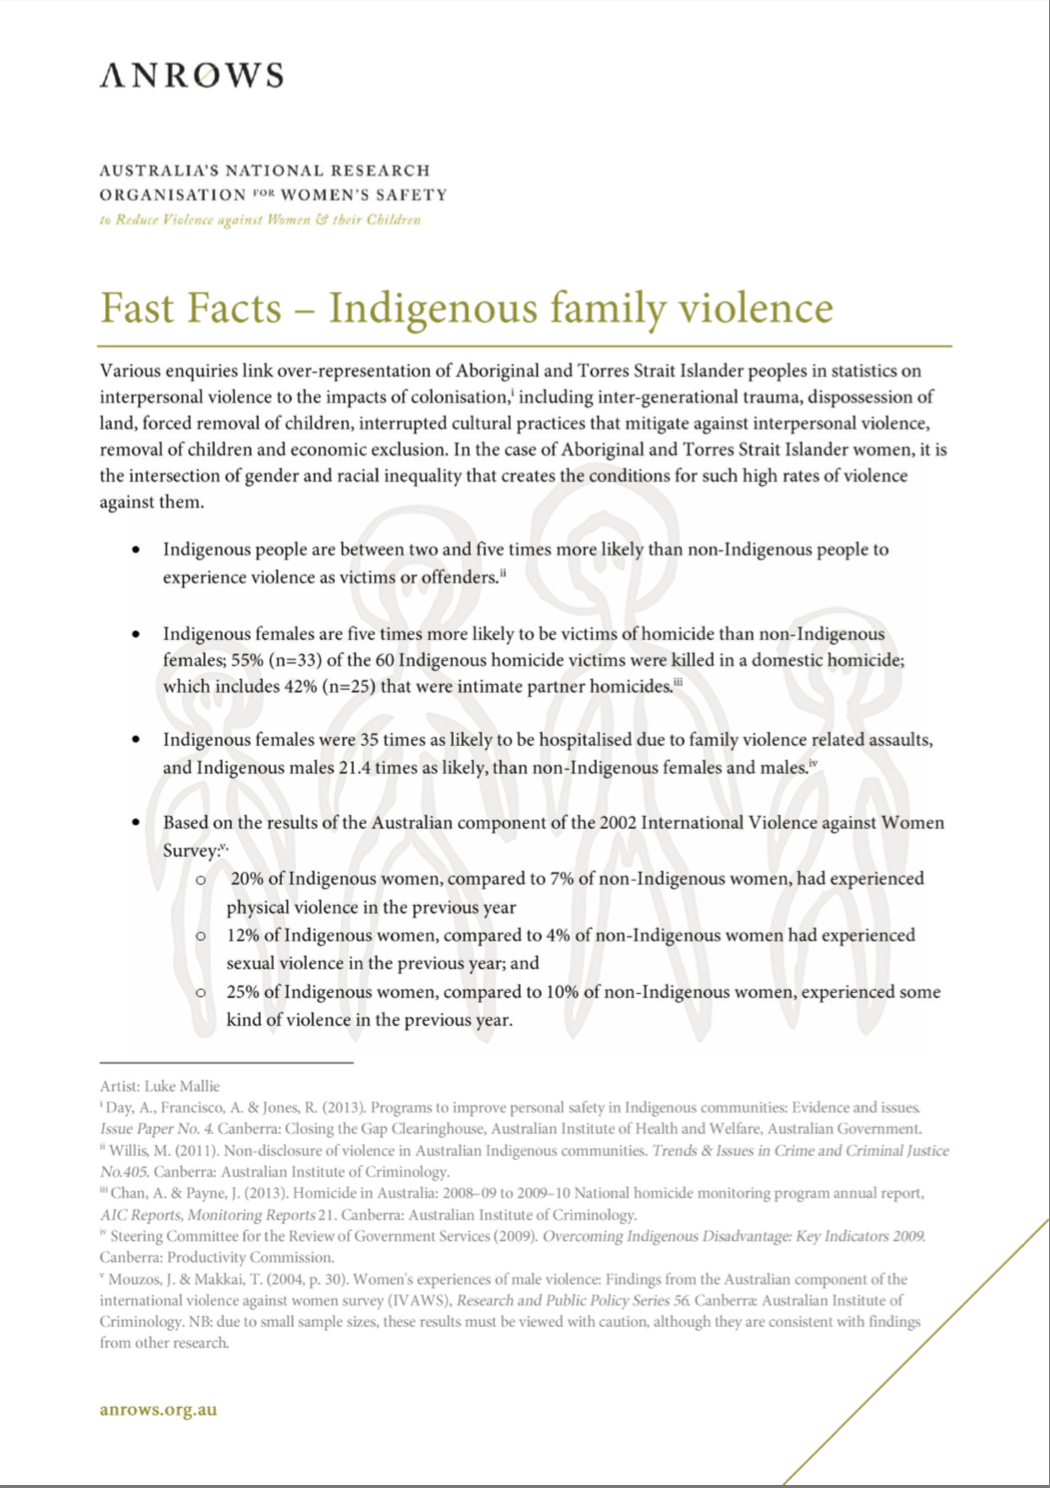 Fast Facts: Indigenous family violence